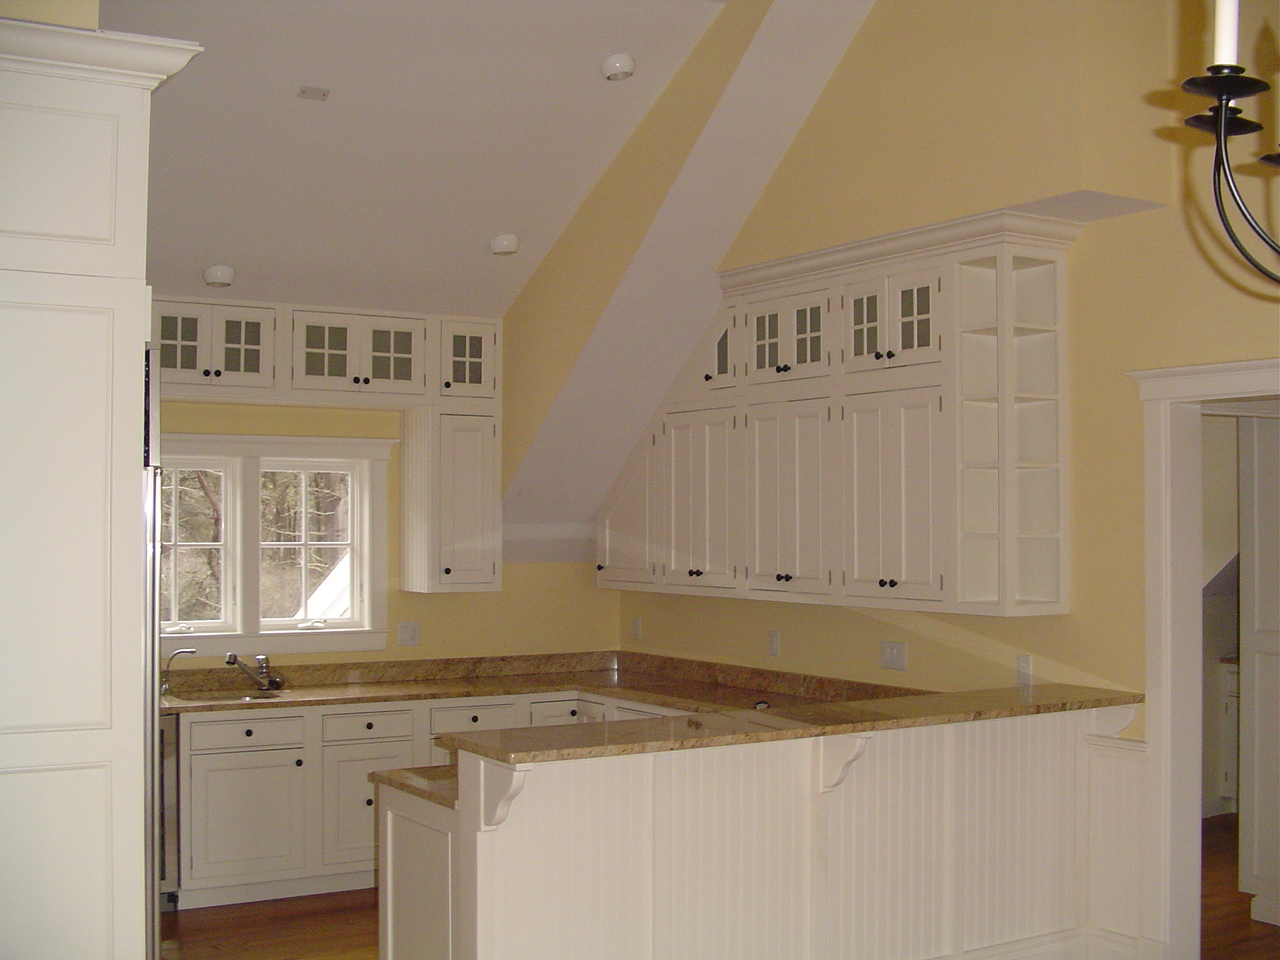 Home design image ideas home interior paint ideas - Home interior painters ...